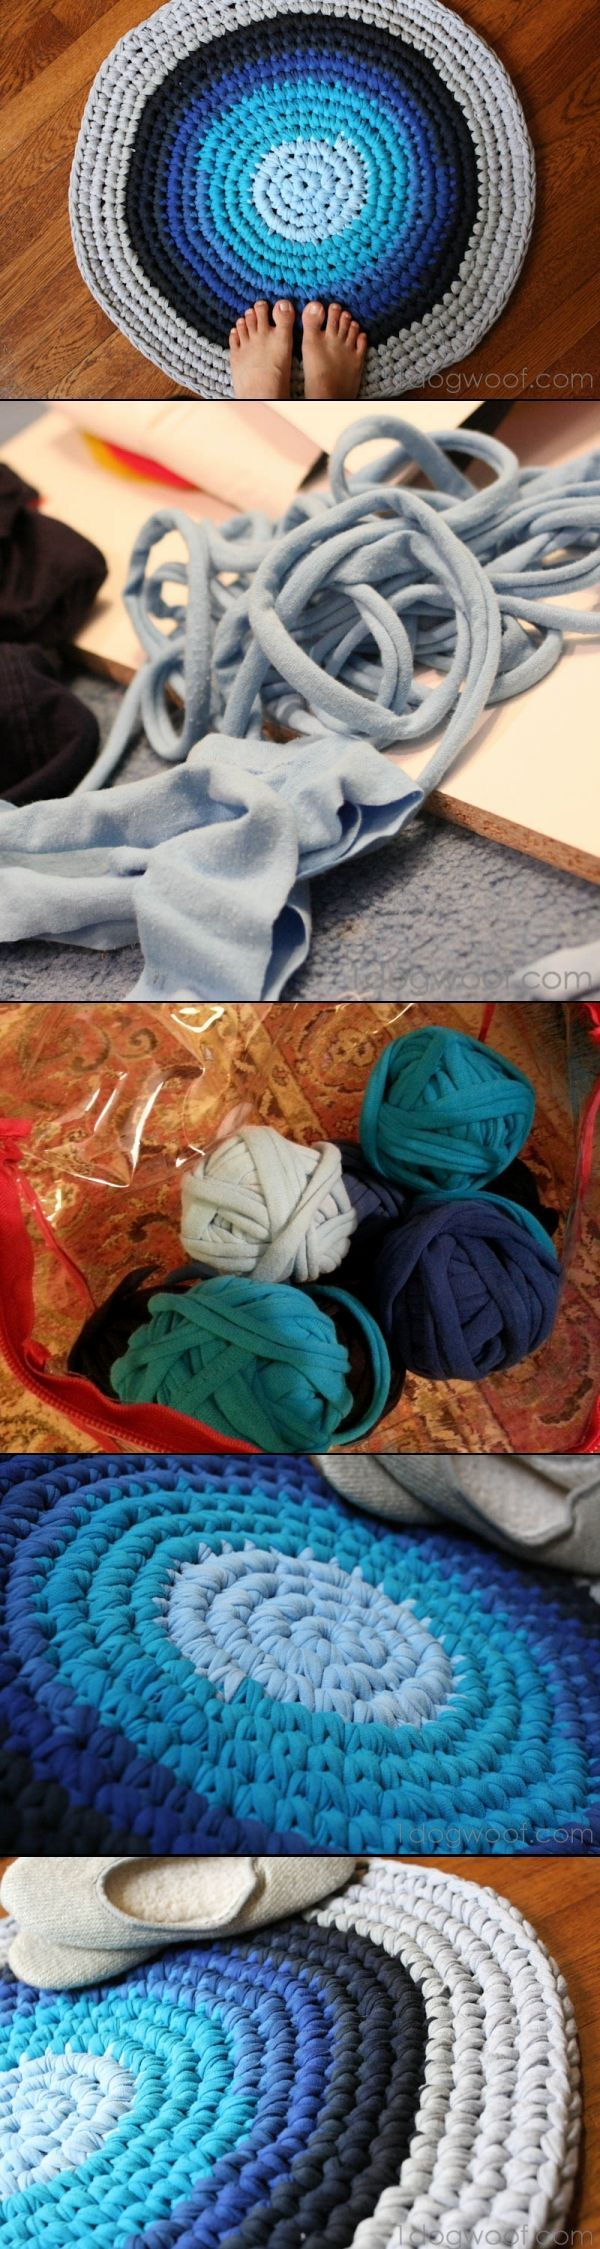 Best T Shirt Rugs Ideas On Pinterest DIY Crochet Rug With - Diy rugs projects